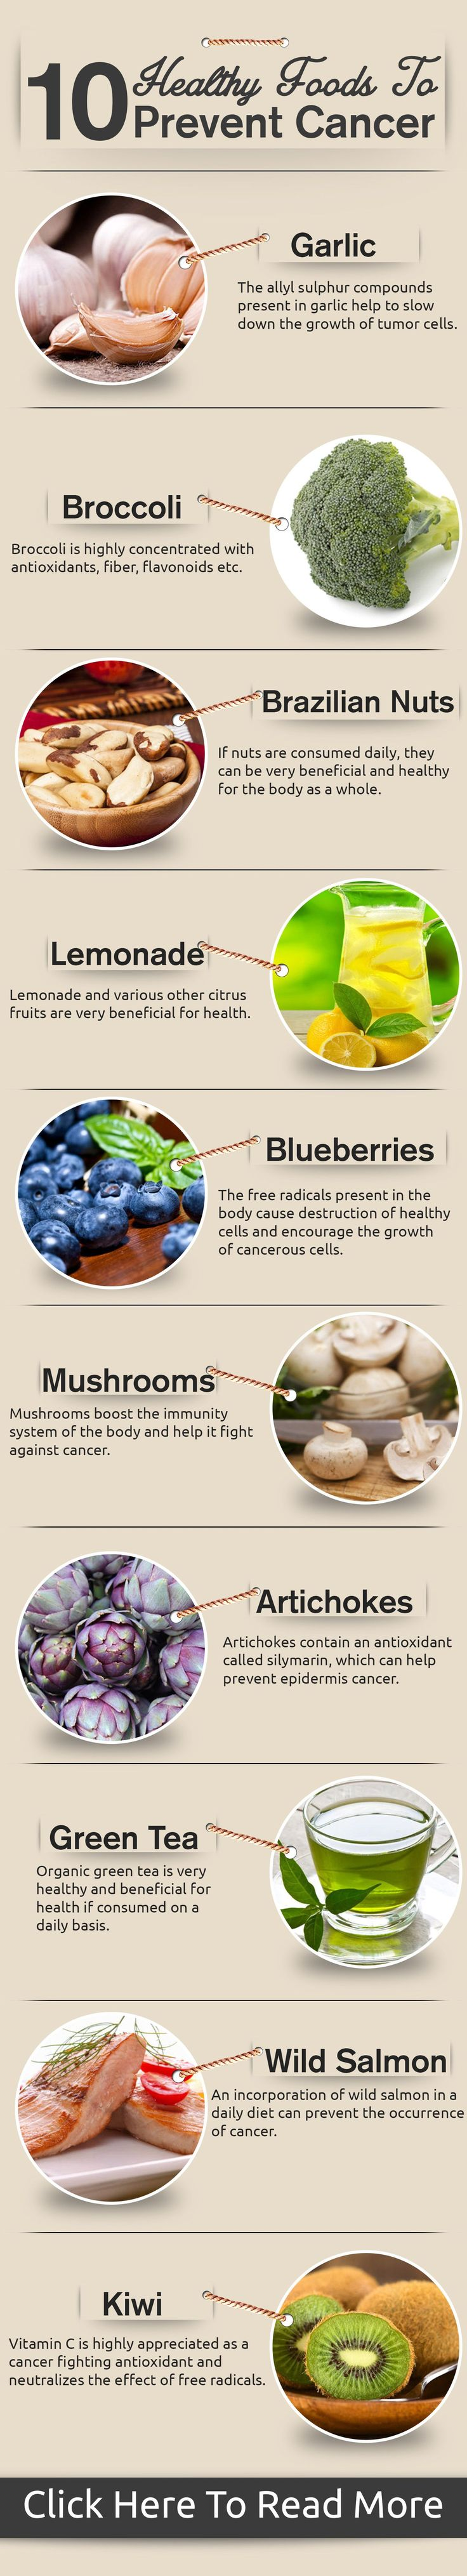 Top 10 Healthy Foods To Prevent Cancer